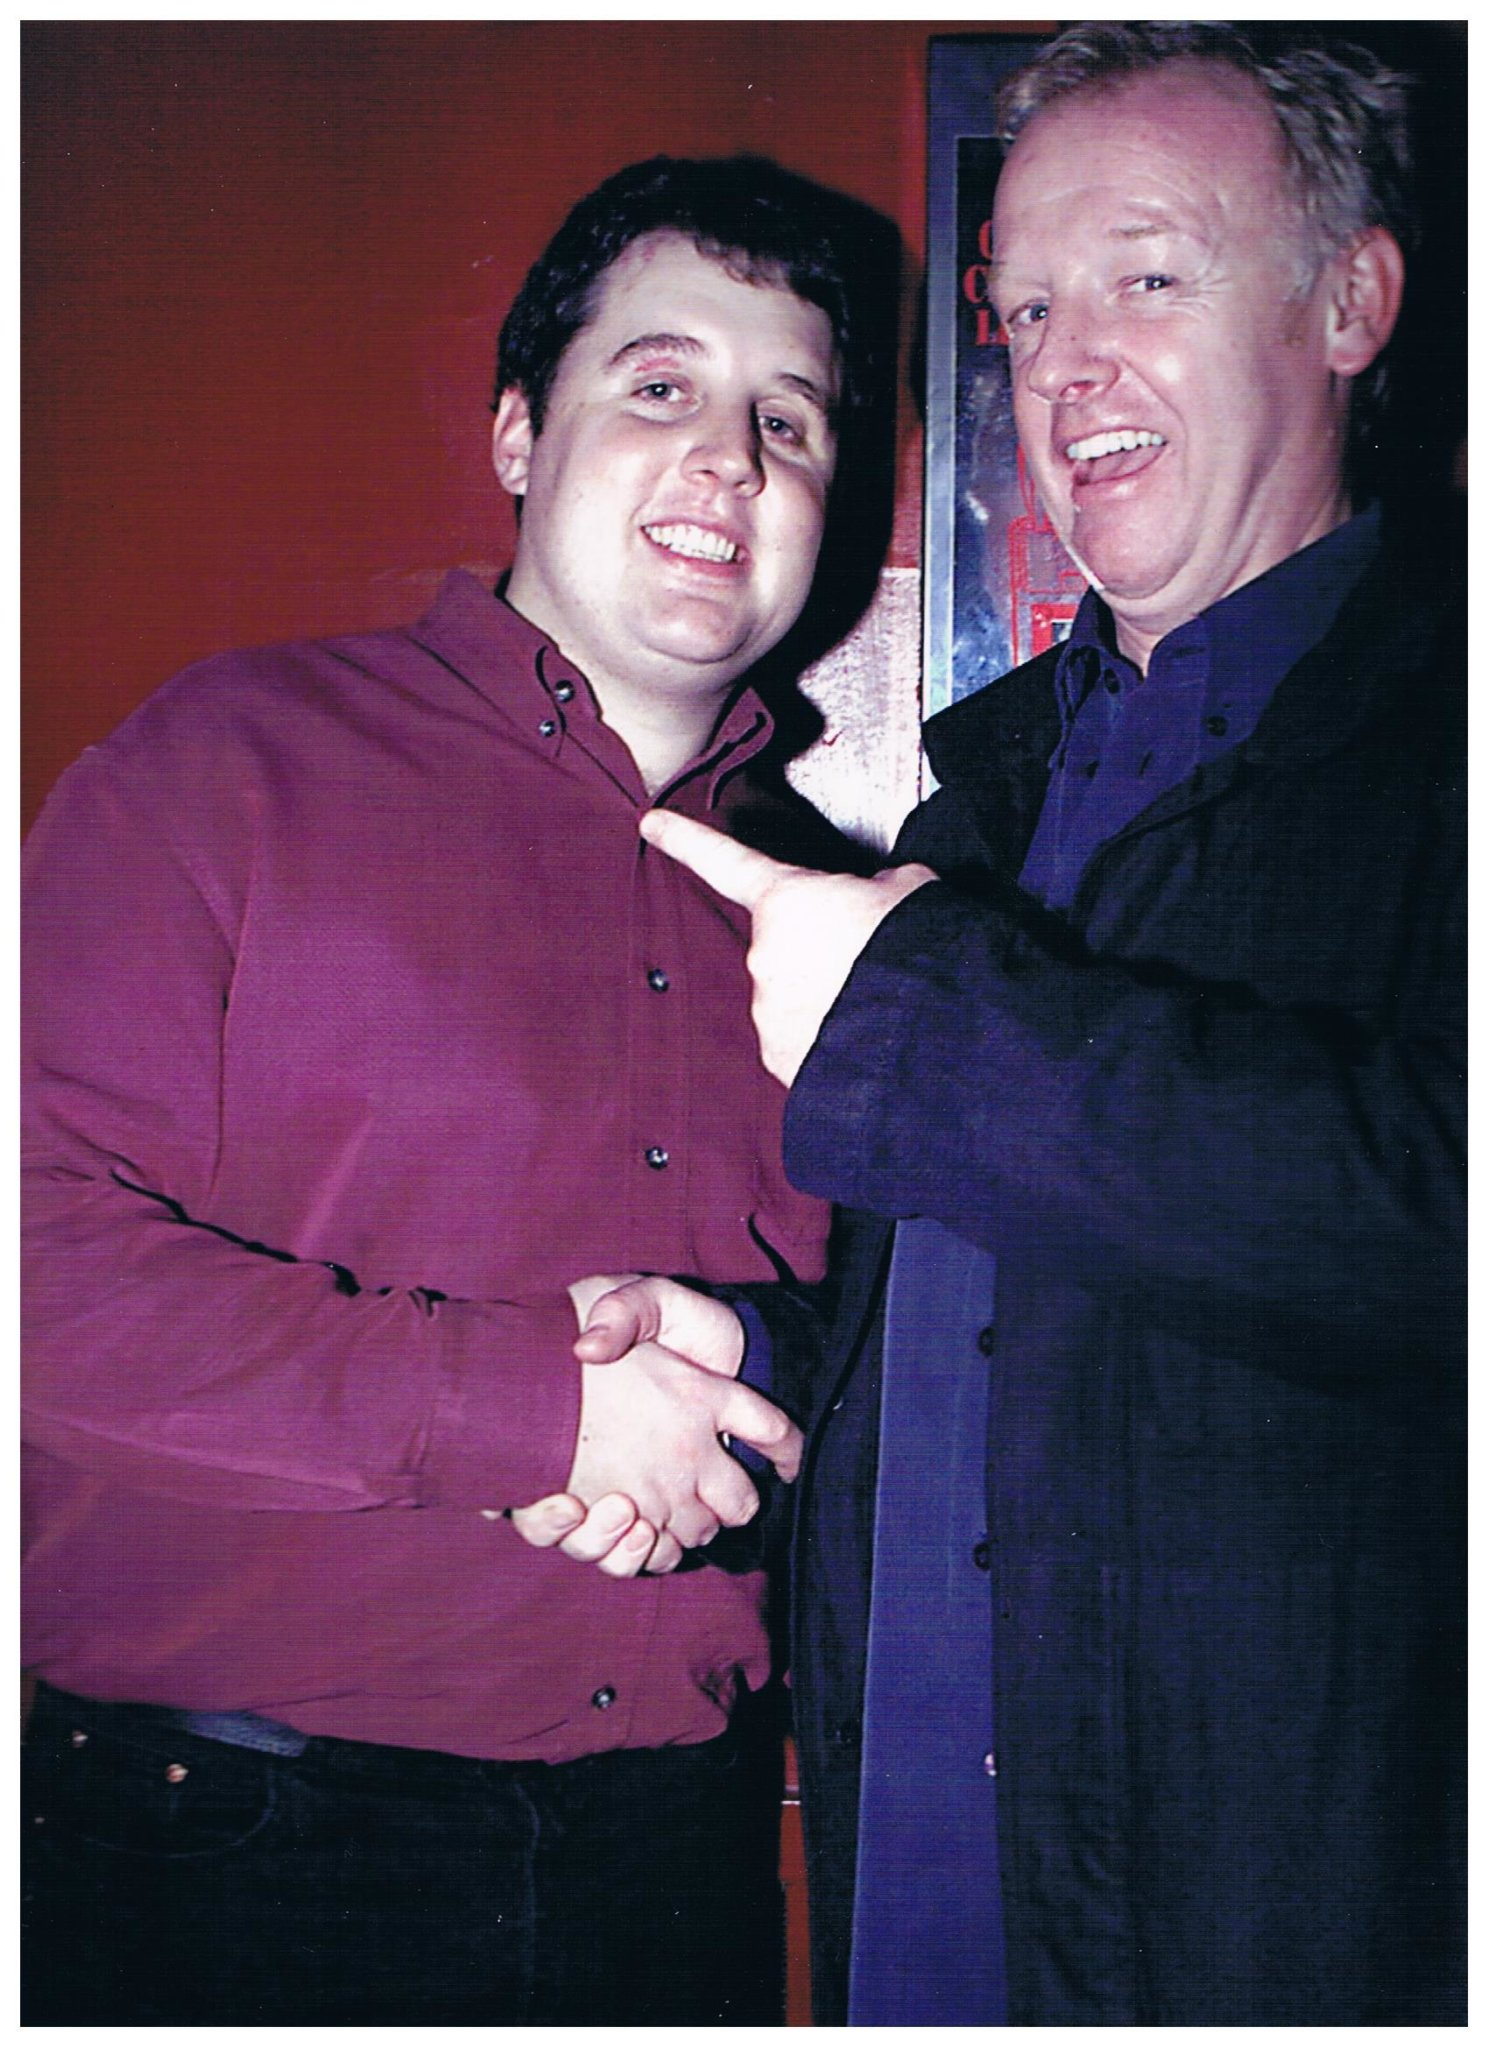 Les Dennis and Peter Kay at The Frog and Bucket!